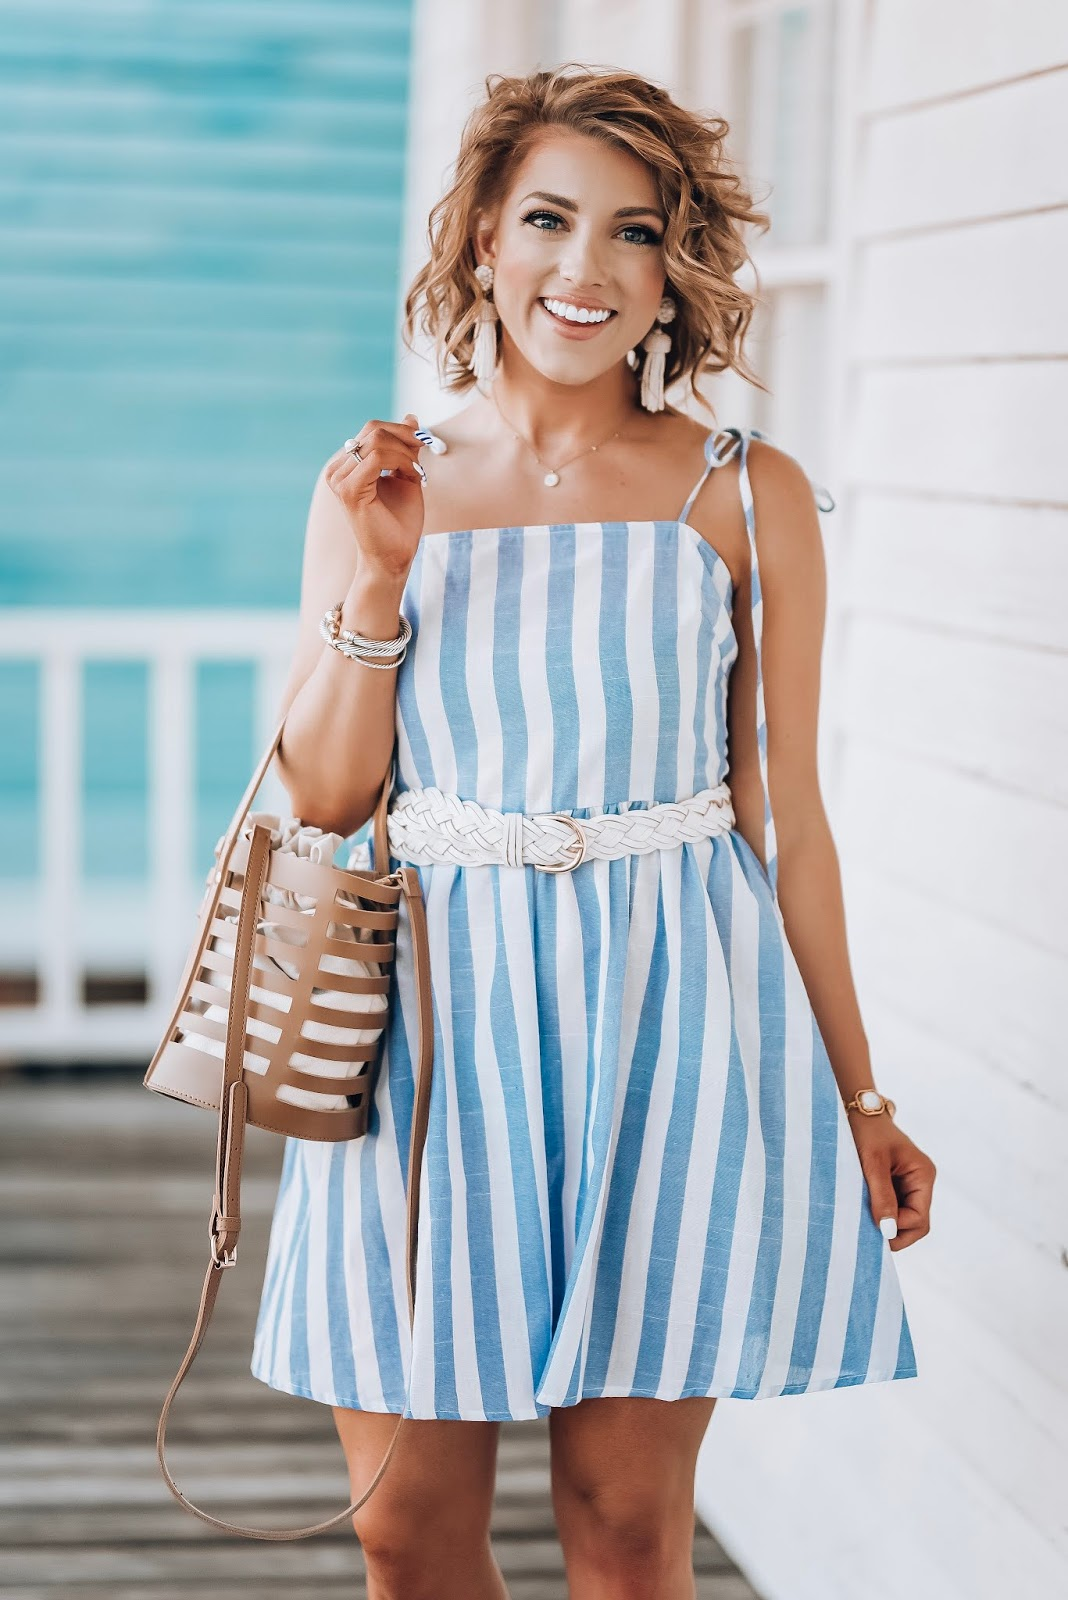 $17 Blue & white Stripe Dress + Recent Amazon Finds - Something Delightful Blog #springstyle #summerstyle #amazon #amazonfashion #amazonfashionfinds #blueandwhite